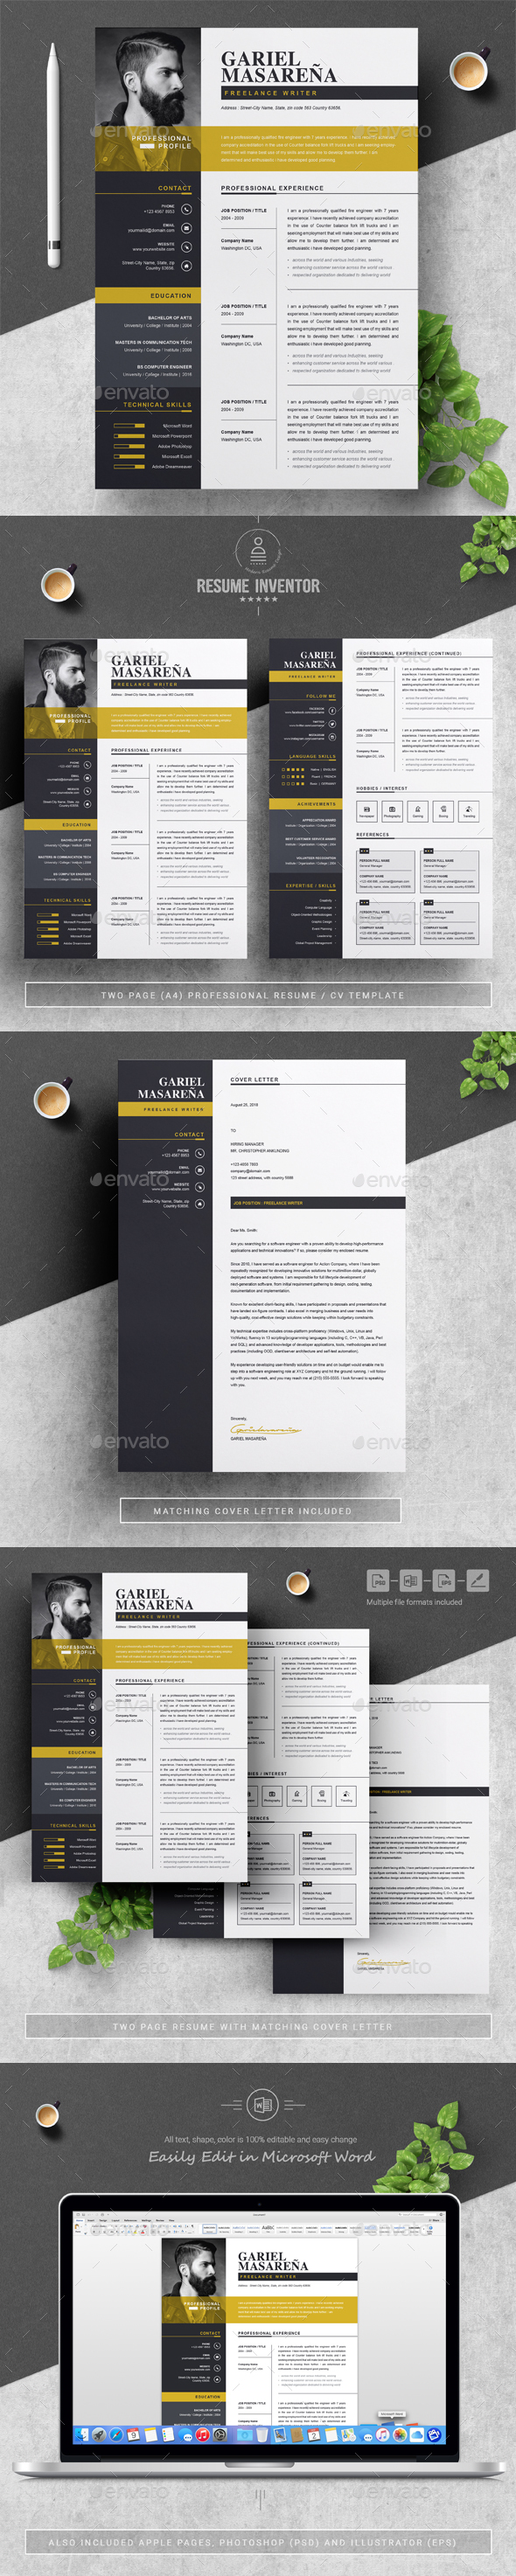 Microsoft Word Graphics Designs Templates From Graphicriver